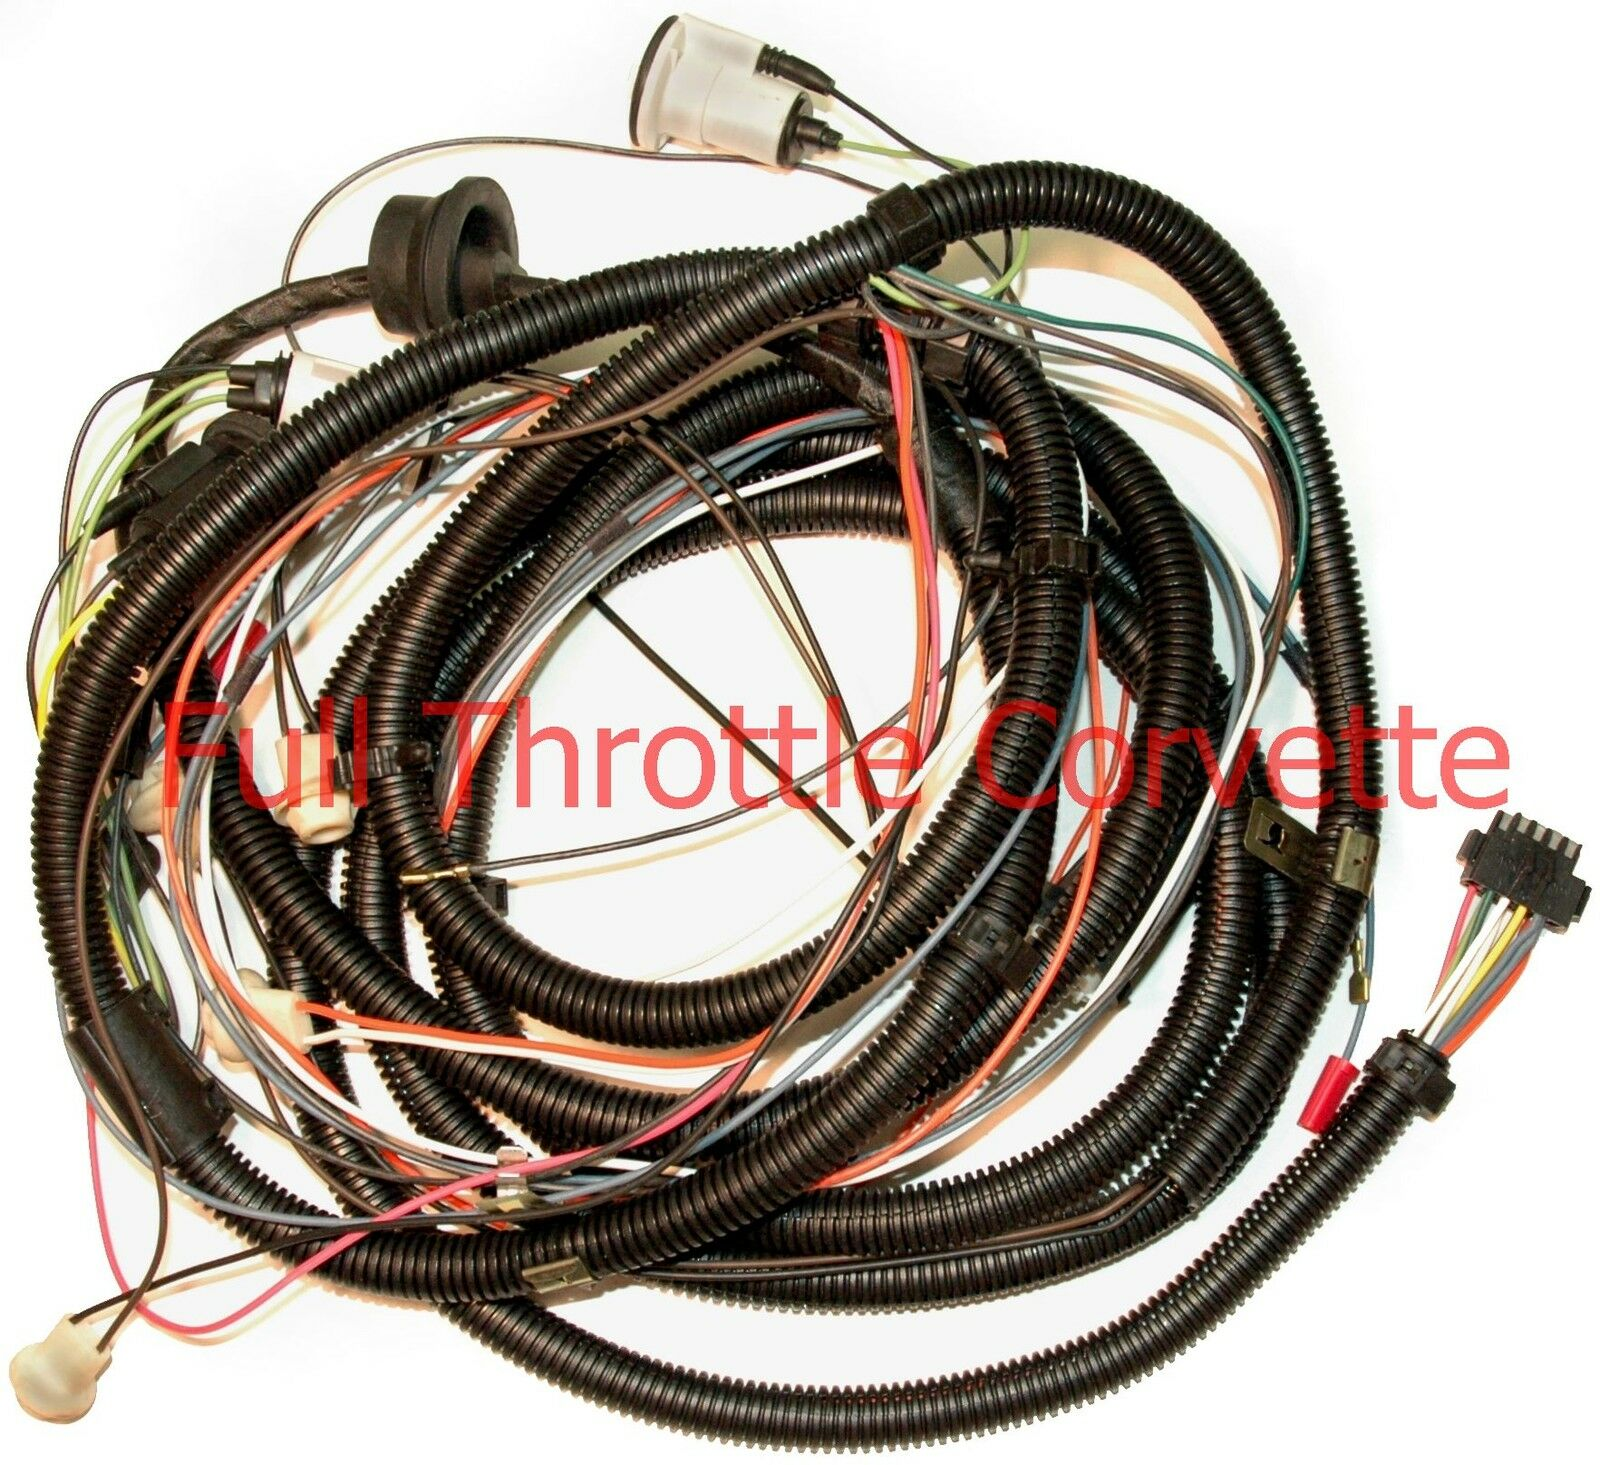 1978 Corvette Wiring Harness Trusted Schematics Diagram 1976 Rear Body Without Factory Speaker 2008